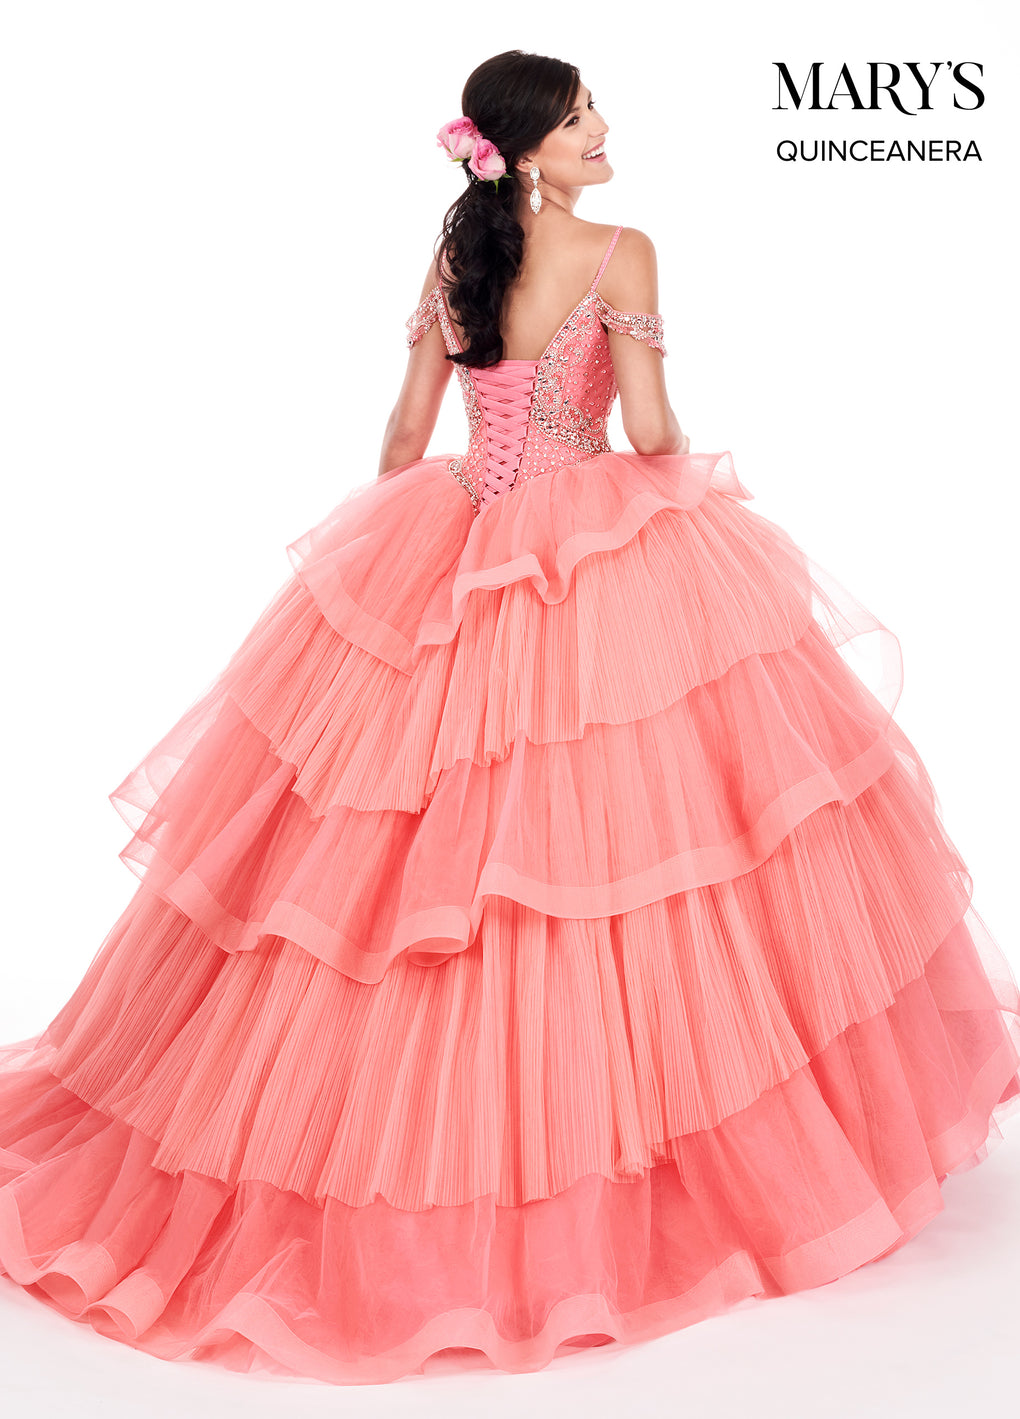 Marys Quinceanera Dresses in Watermelon, Periwinkle, or Mint Color